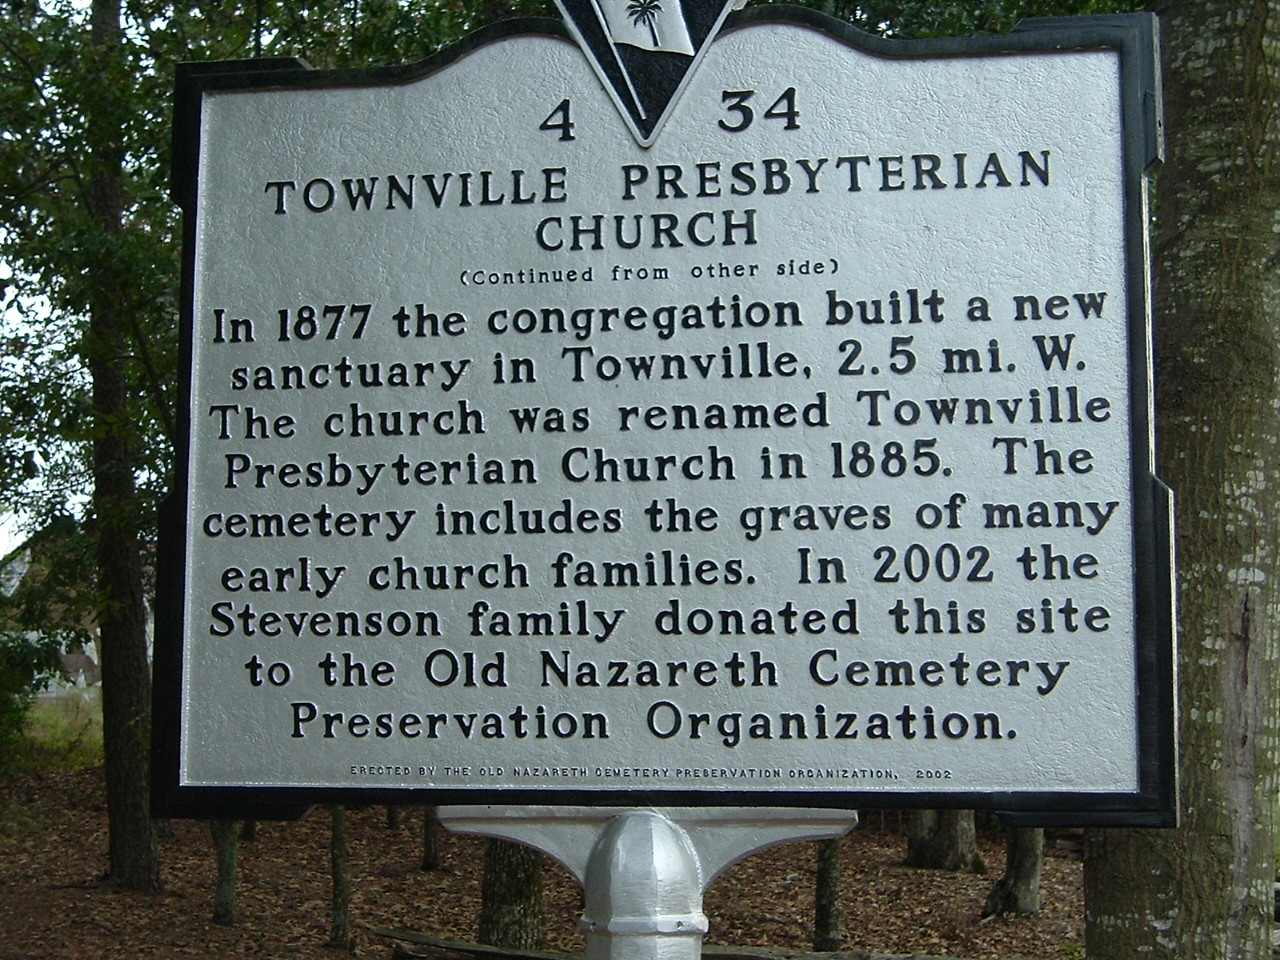 Image:Townville Presbyterian Church sign 2.jpg